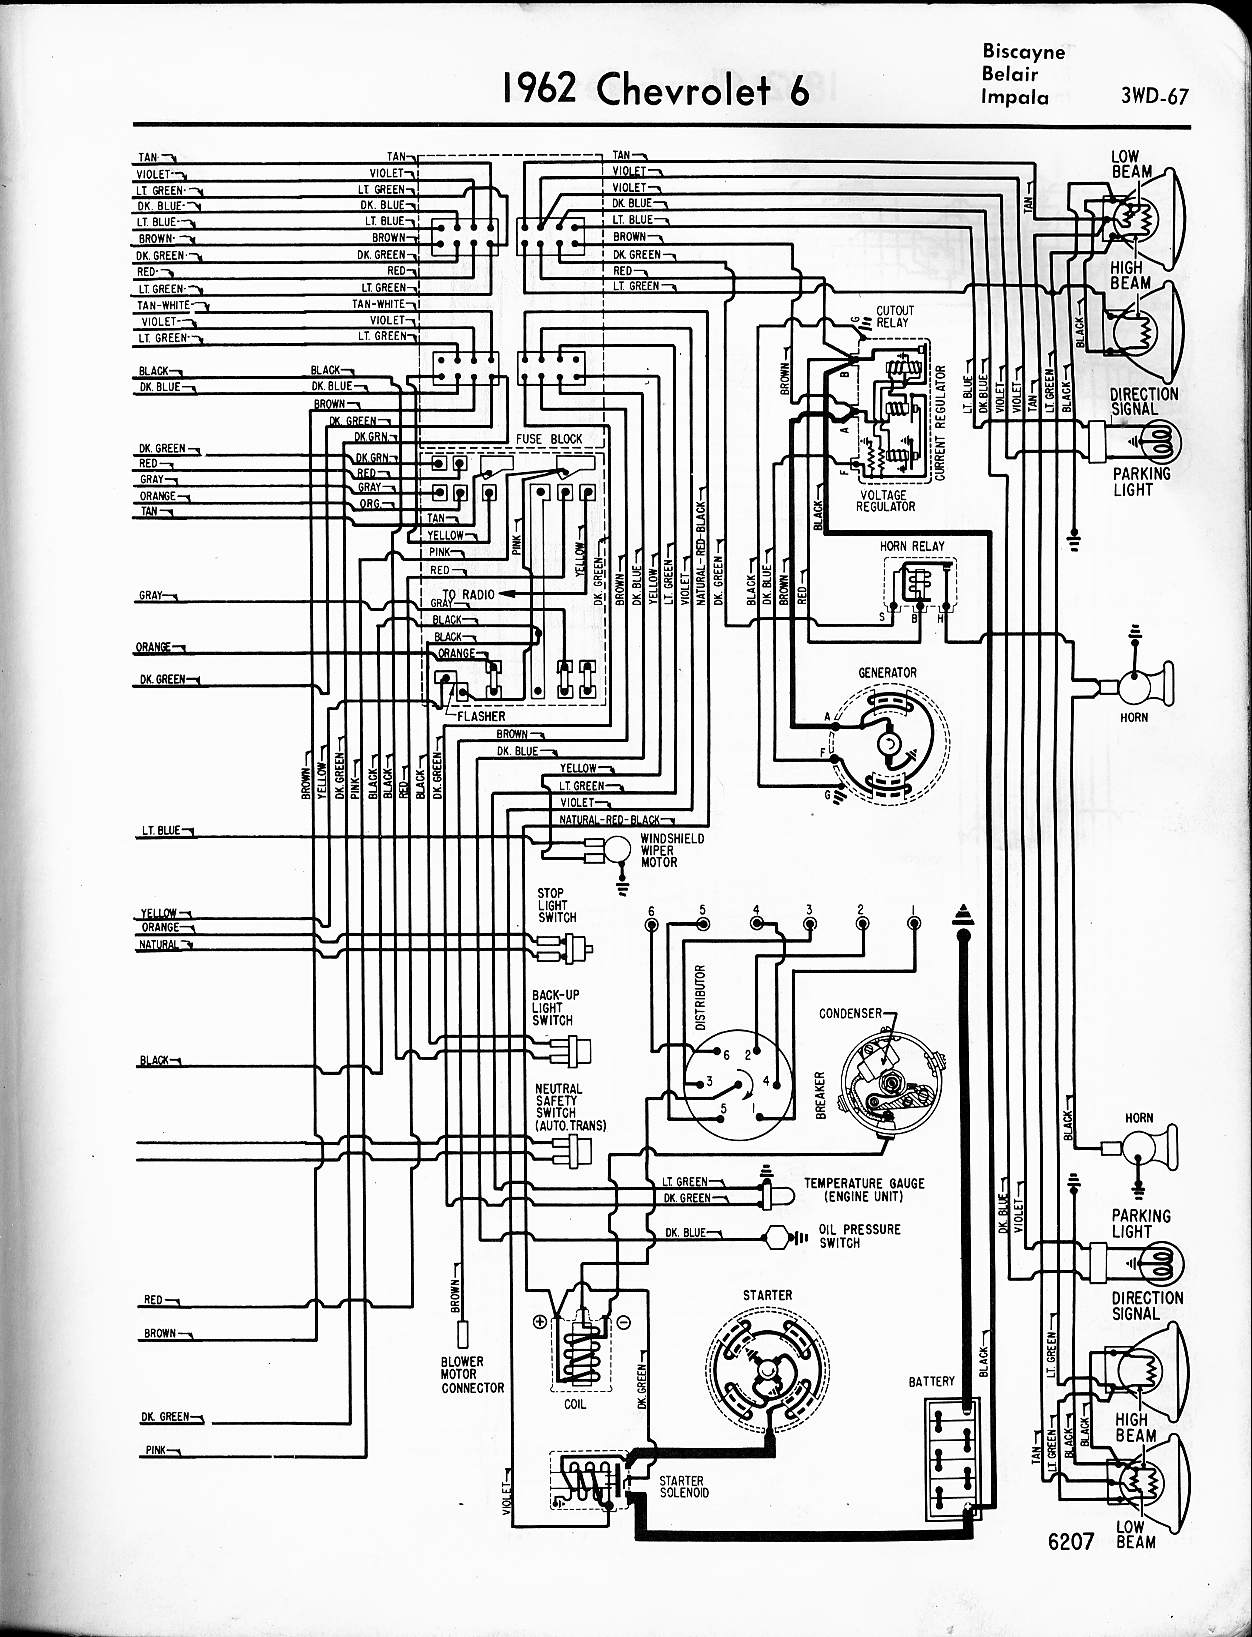 Terrific 1969 Impala Fuse Box Wiring Library Wiring Cloud Peadfoxcilixyz